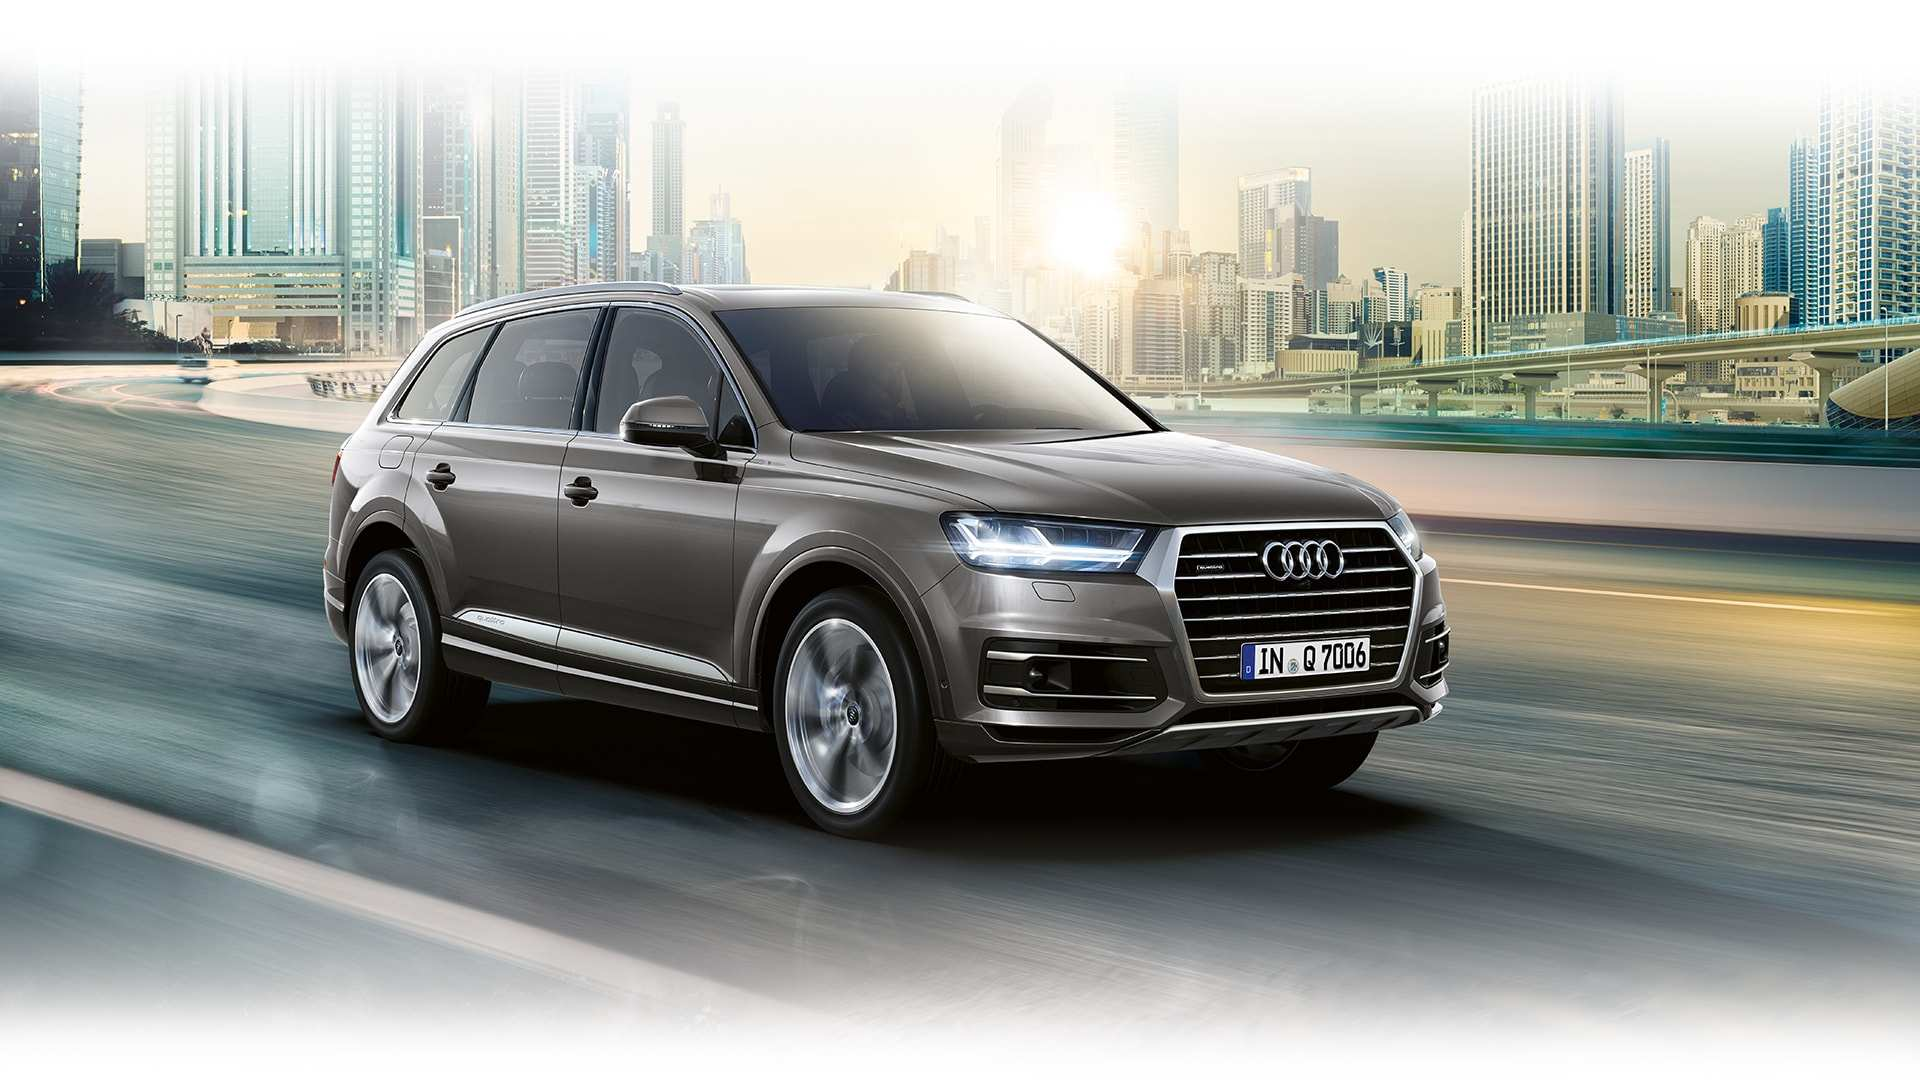 88 Great The 2019 Audi X7 Performance And New Engine Ratings with The 2019 Audi X7 Performance And New Engine